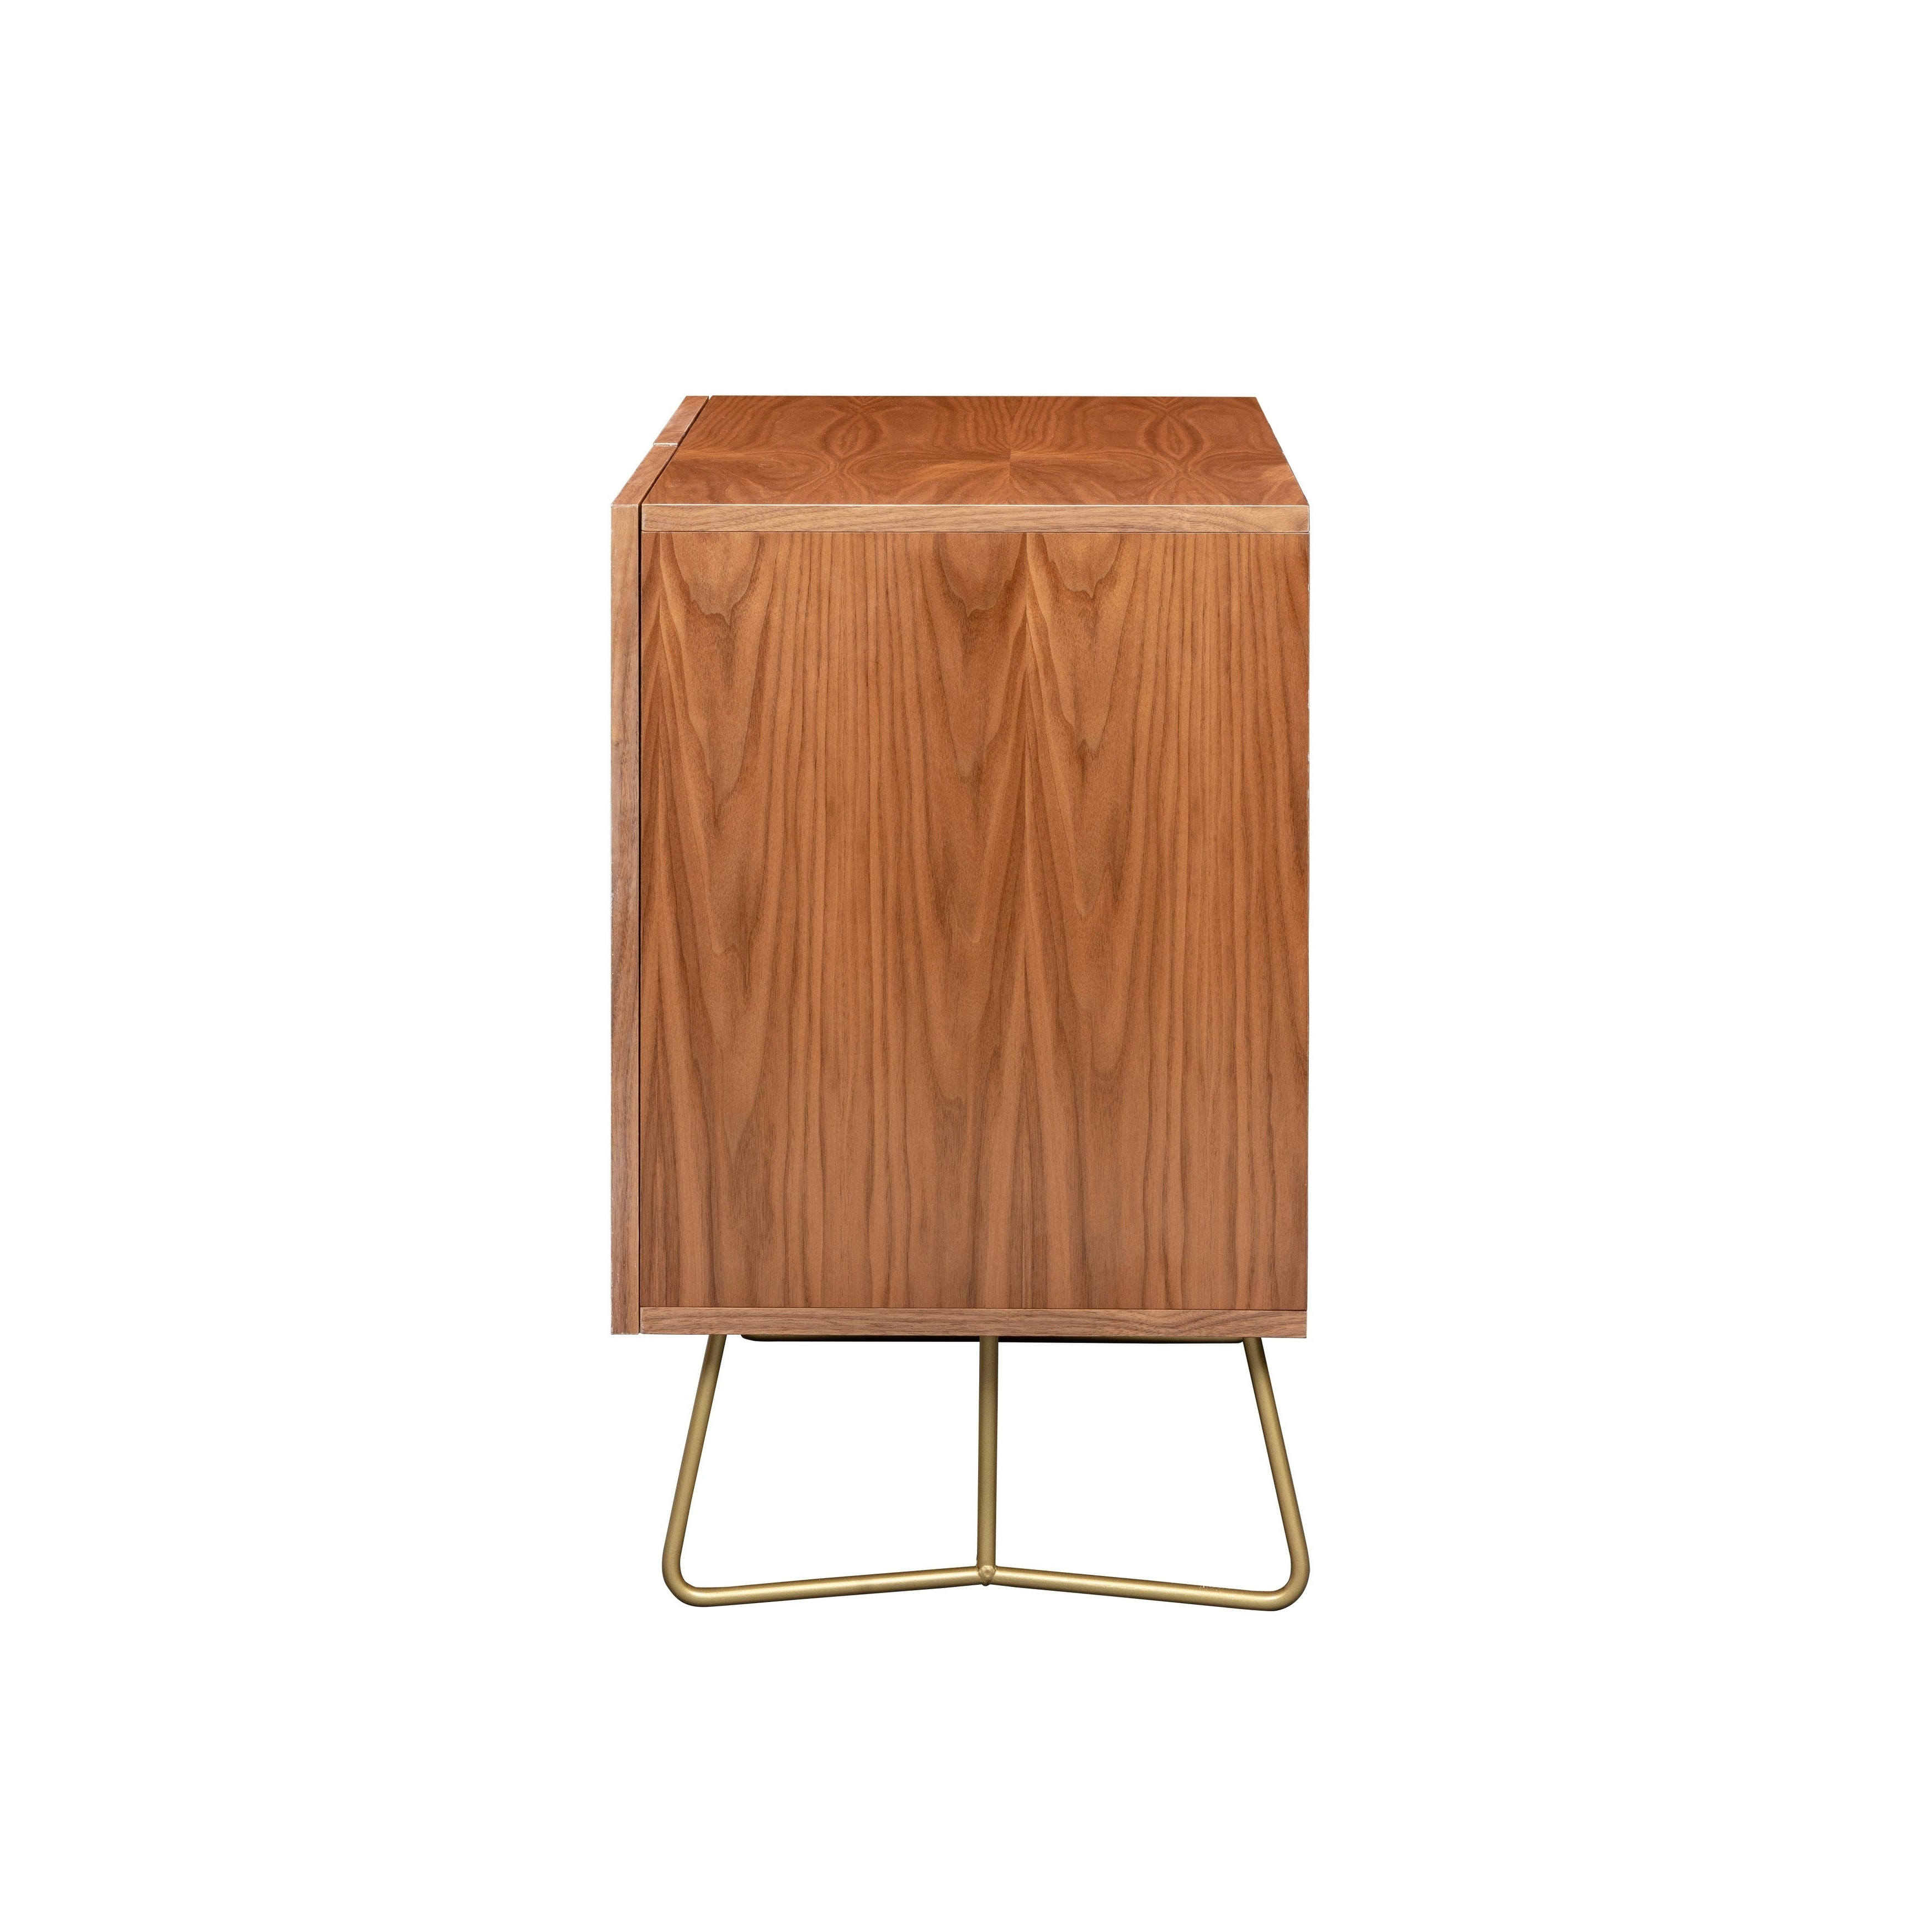 Deny Designs Agate Chevron Credenza (birch Or Walnut, 2 Leg Options) Intended For Oenomel Credenzas (View 3 of 20)